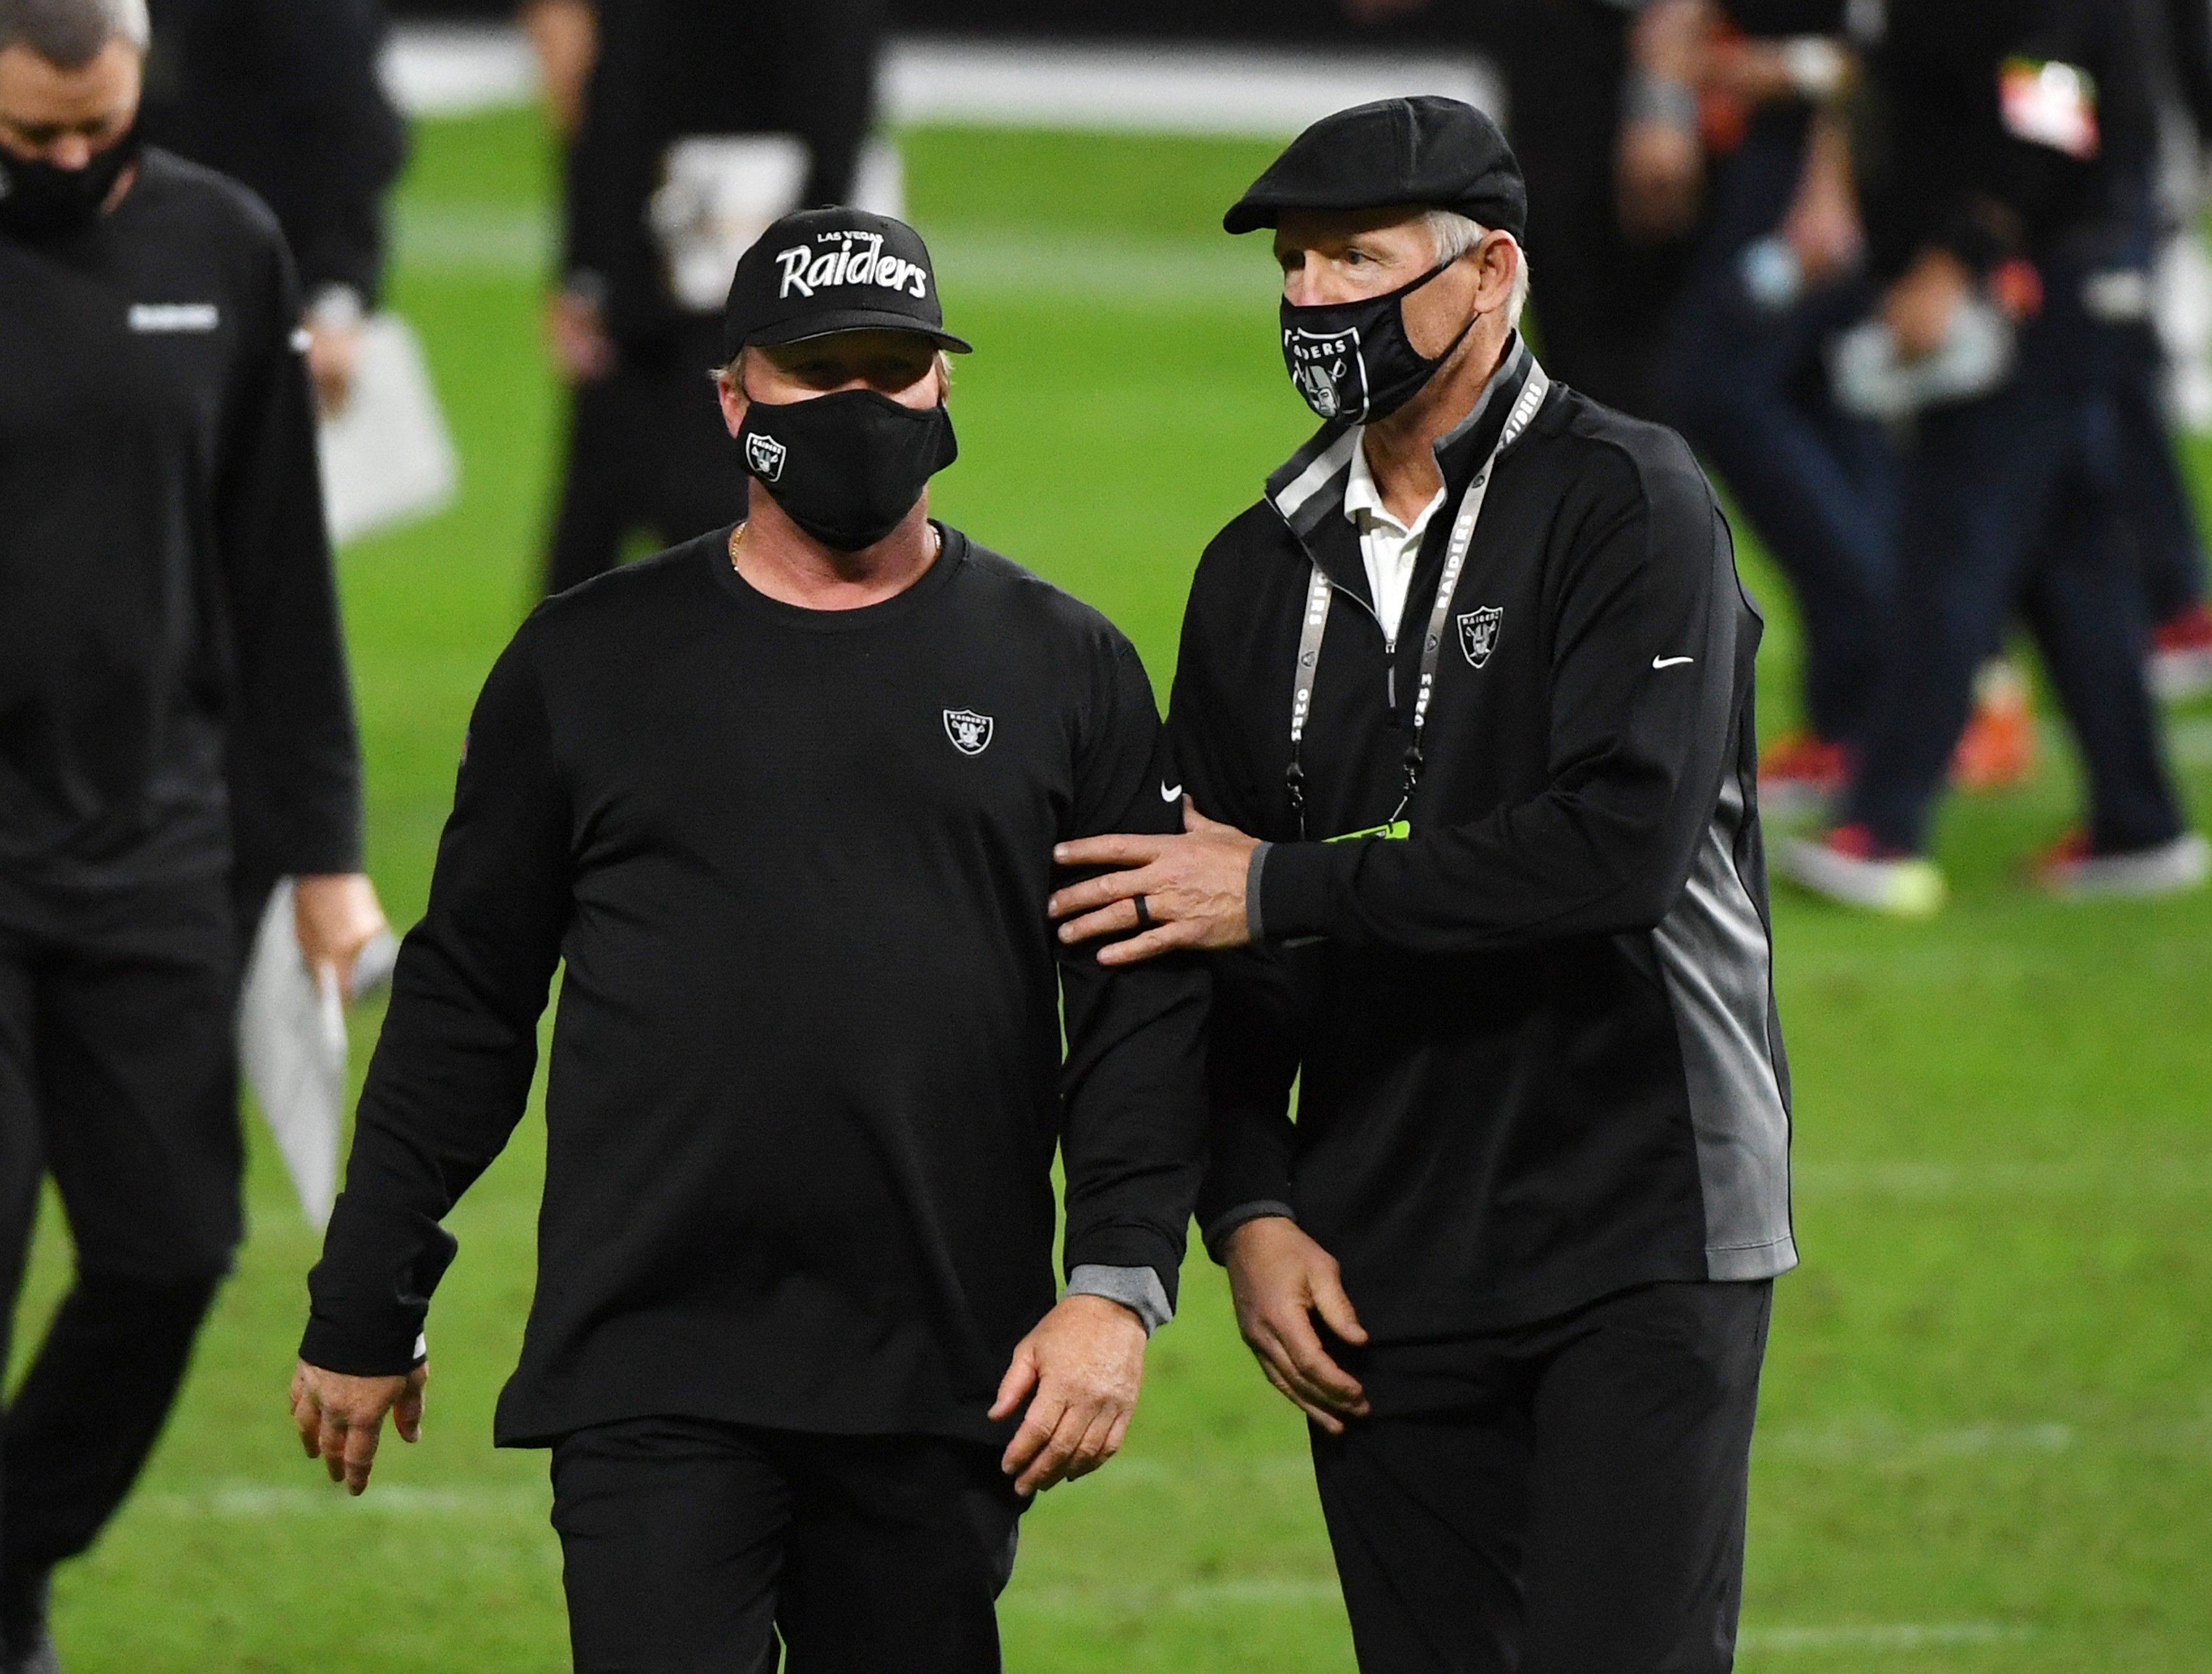 Raiders must meet expectations of a winner, and beating Atlanta is the first step